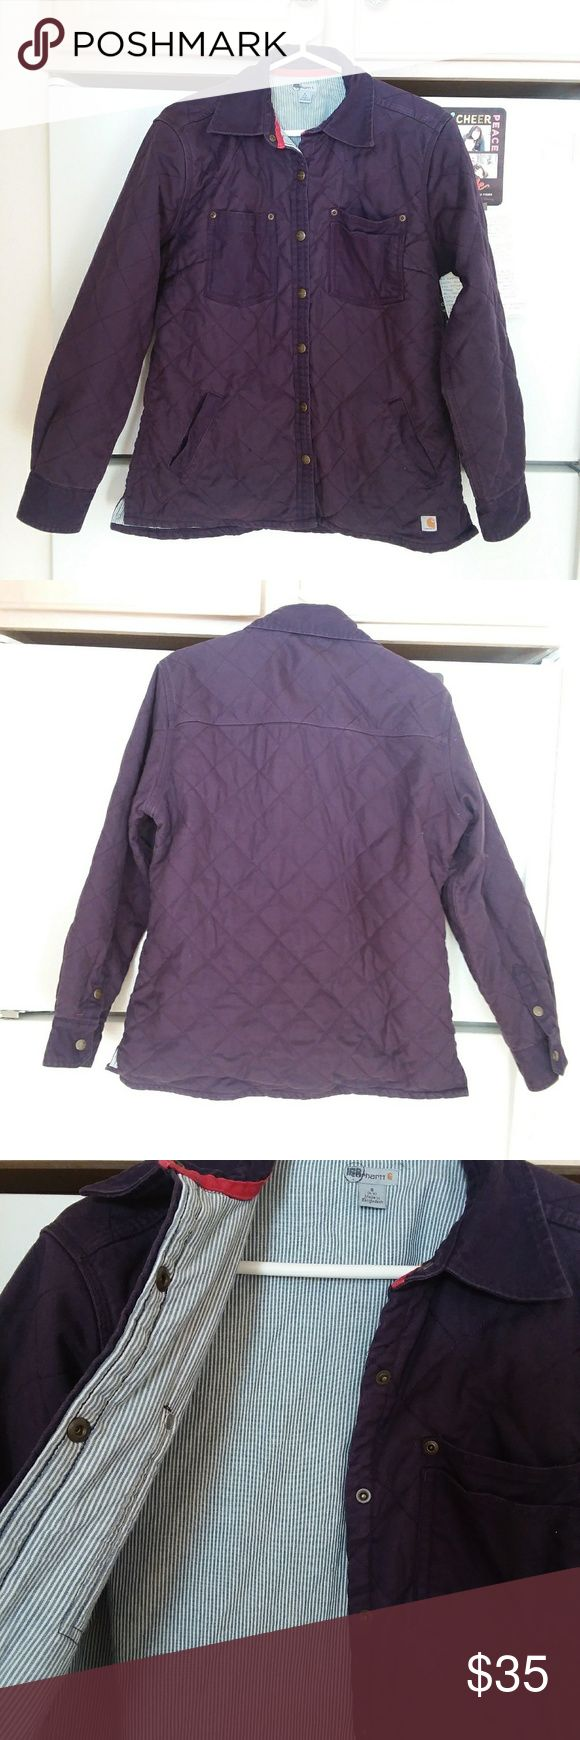 Carhartt Jacket Perfect condition, quilted women's jacket. Absolutely adorable pinstripes on the inside, and pockets on the front. The first picture is the most accurate representation of color.  Open to all offers! Carhartt Jackets & Coats